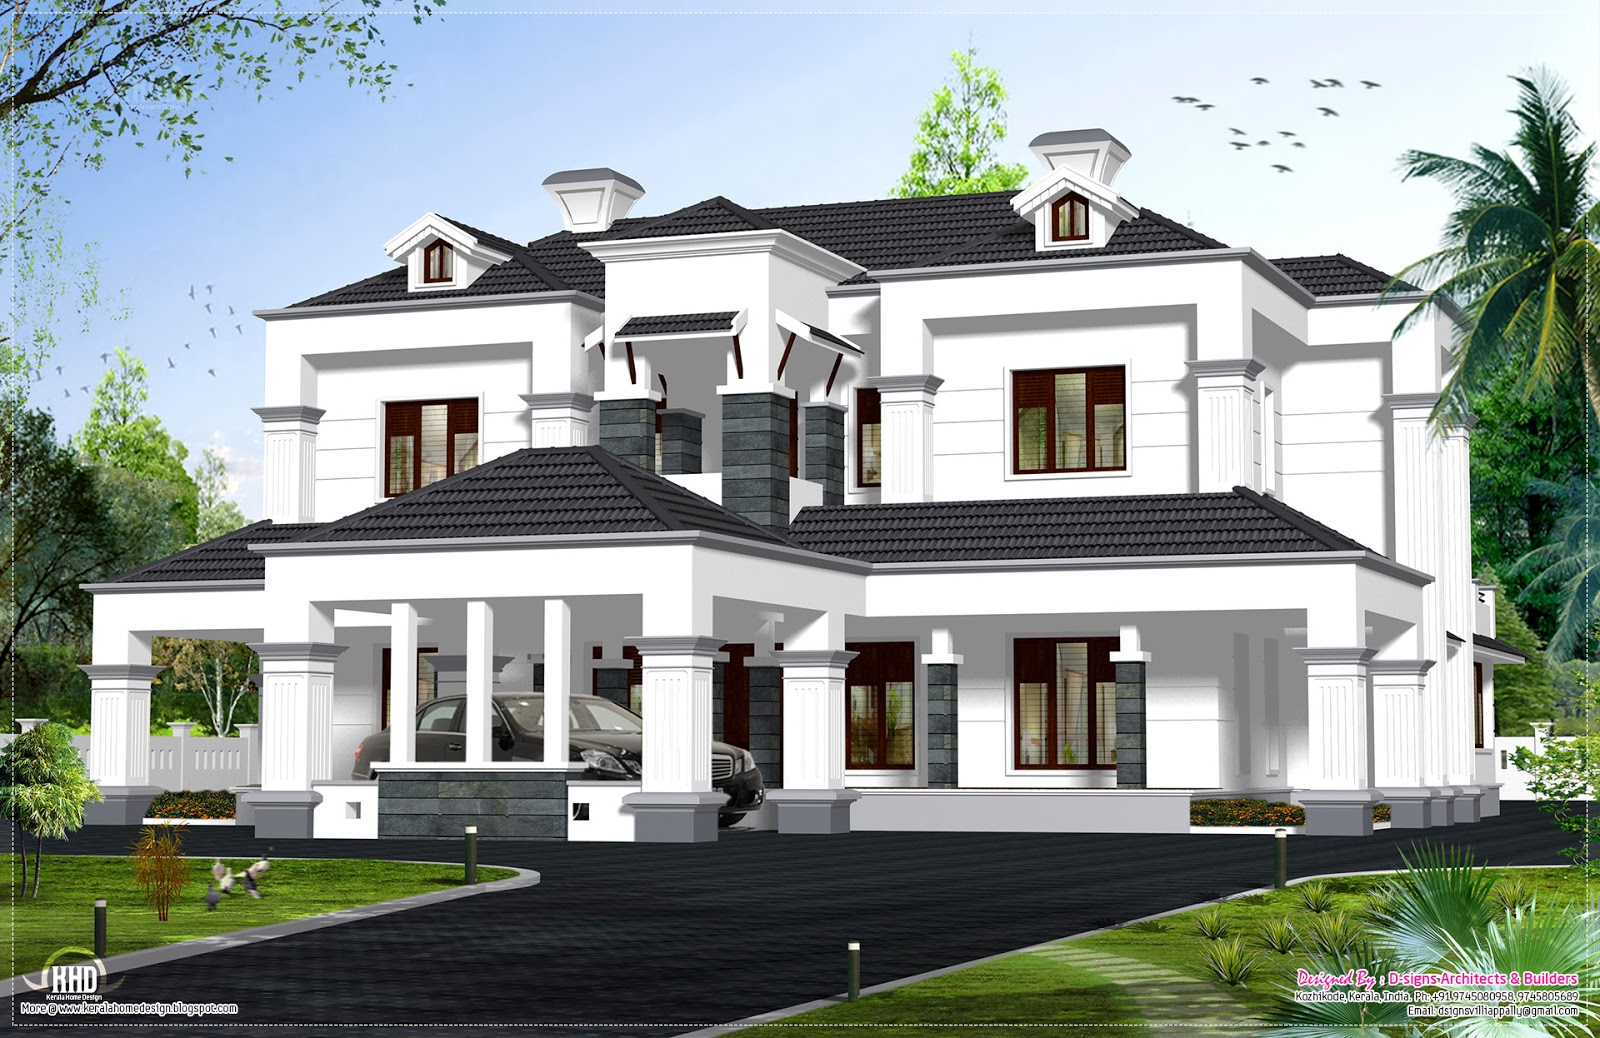 Victorian model house exterior kerala home design and for Victorian home designs